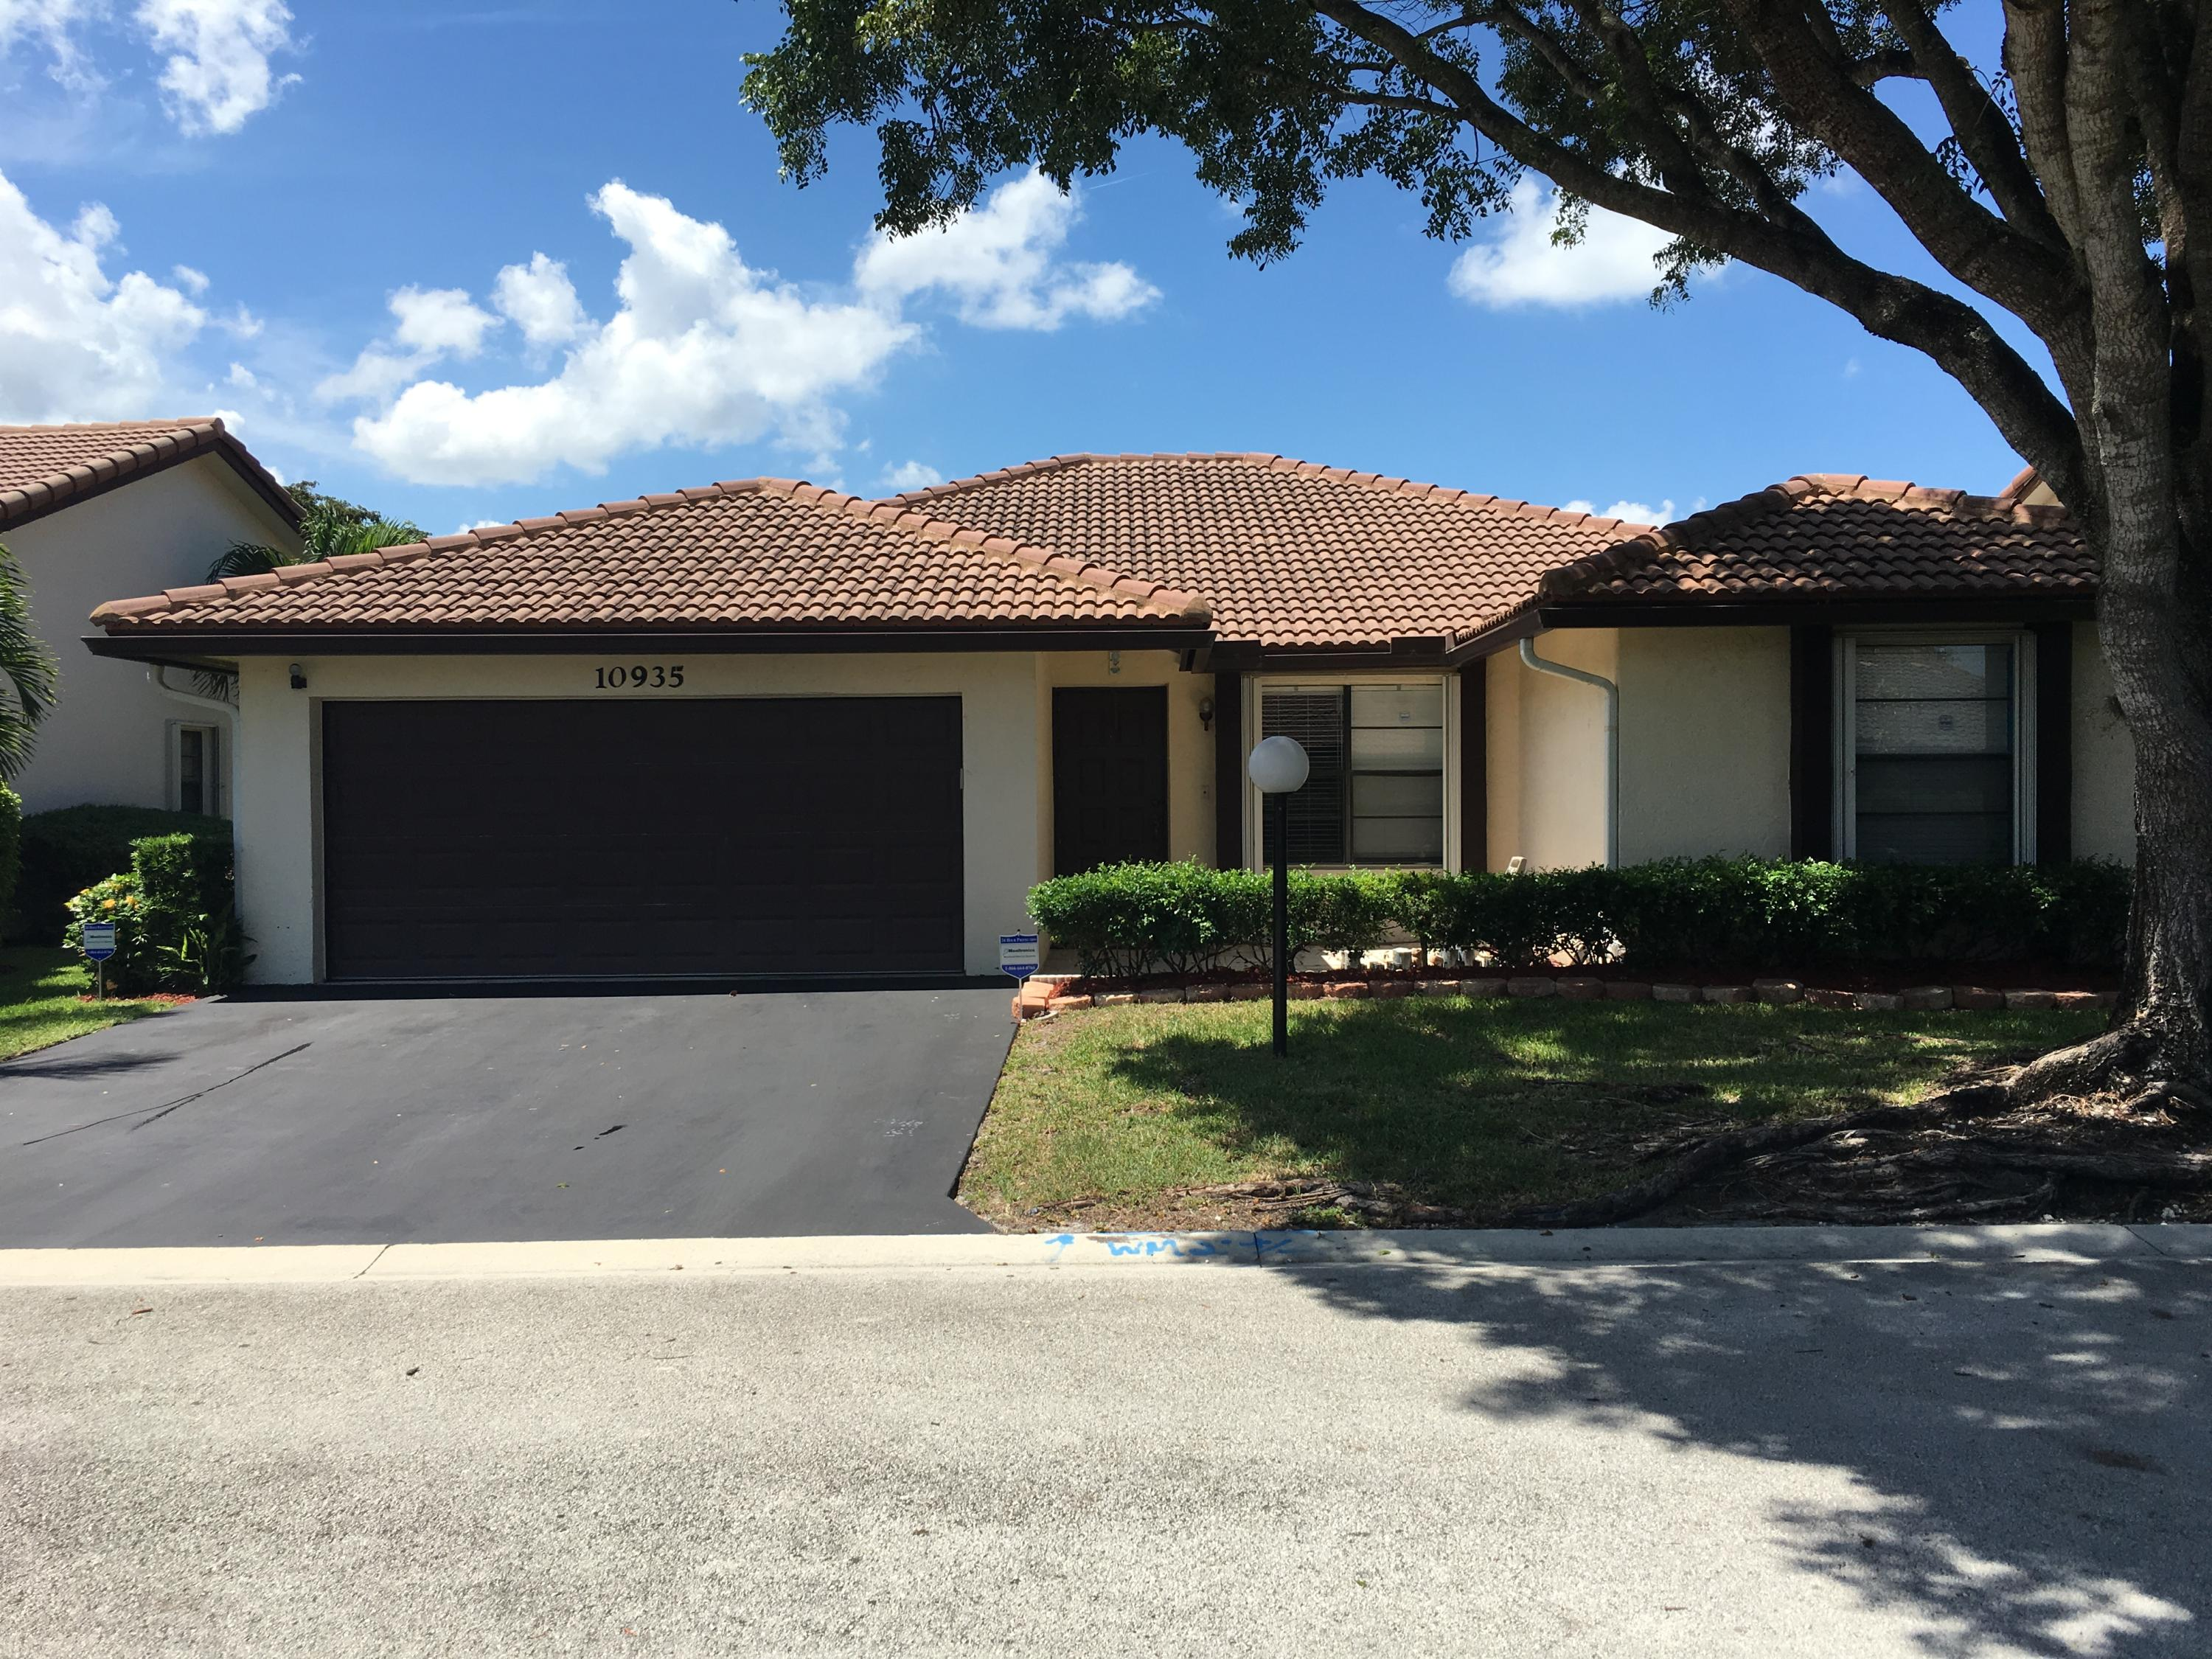 10935 Cypress Run Circle, Coral Springs, Florida 33071, 3 Bedrooms Bedrooms, ,2 BathroomsBathrooms,Rental,For Rent,Cypress Run,RX-10568935